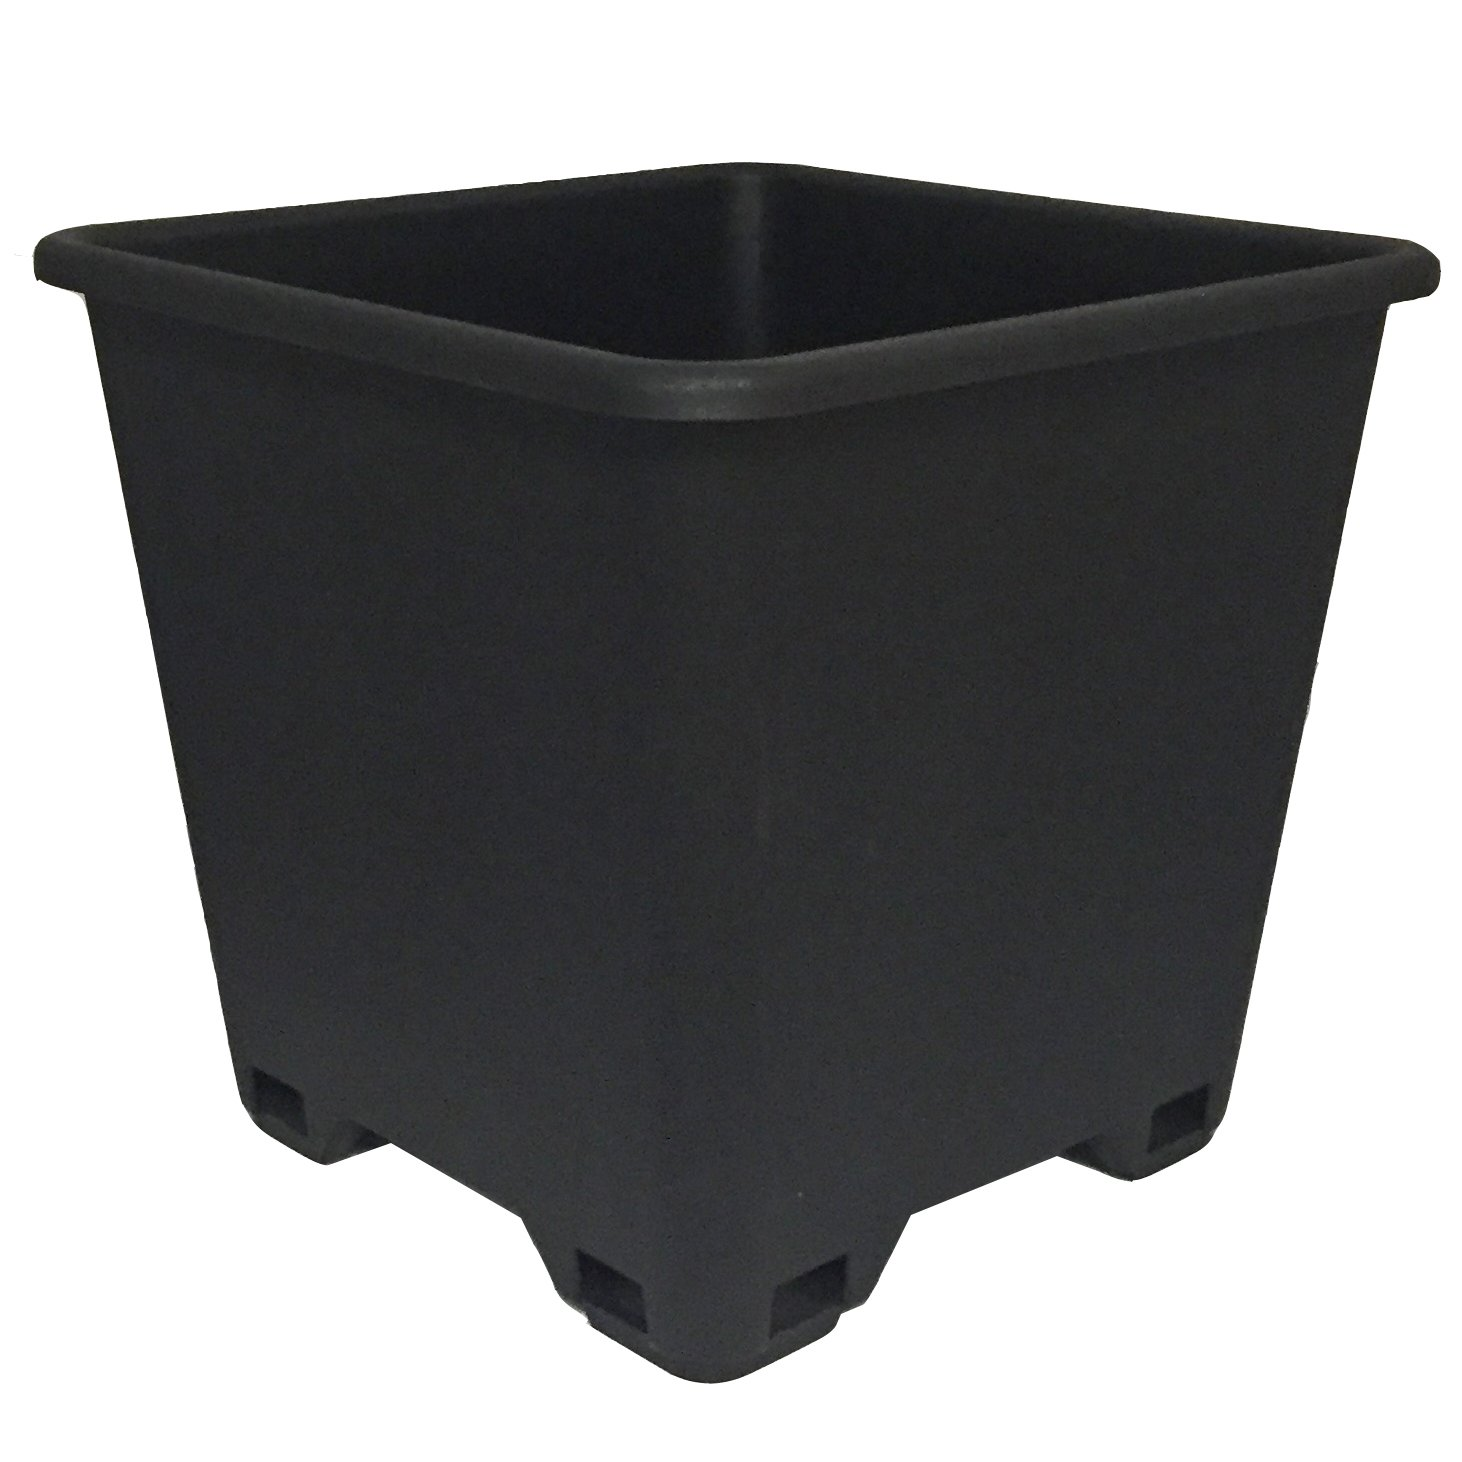 Trade 7 Gallon, Re-usable Square Nursery Pot, Case of 5